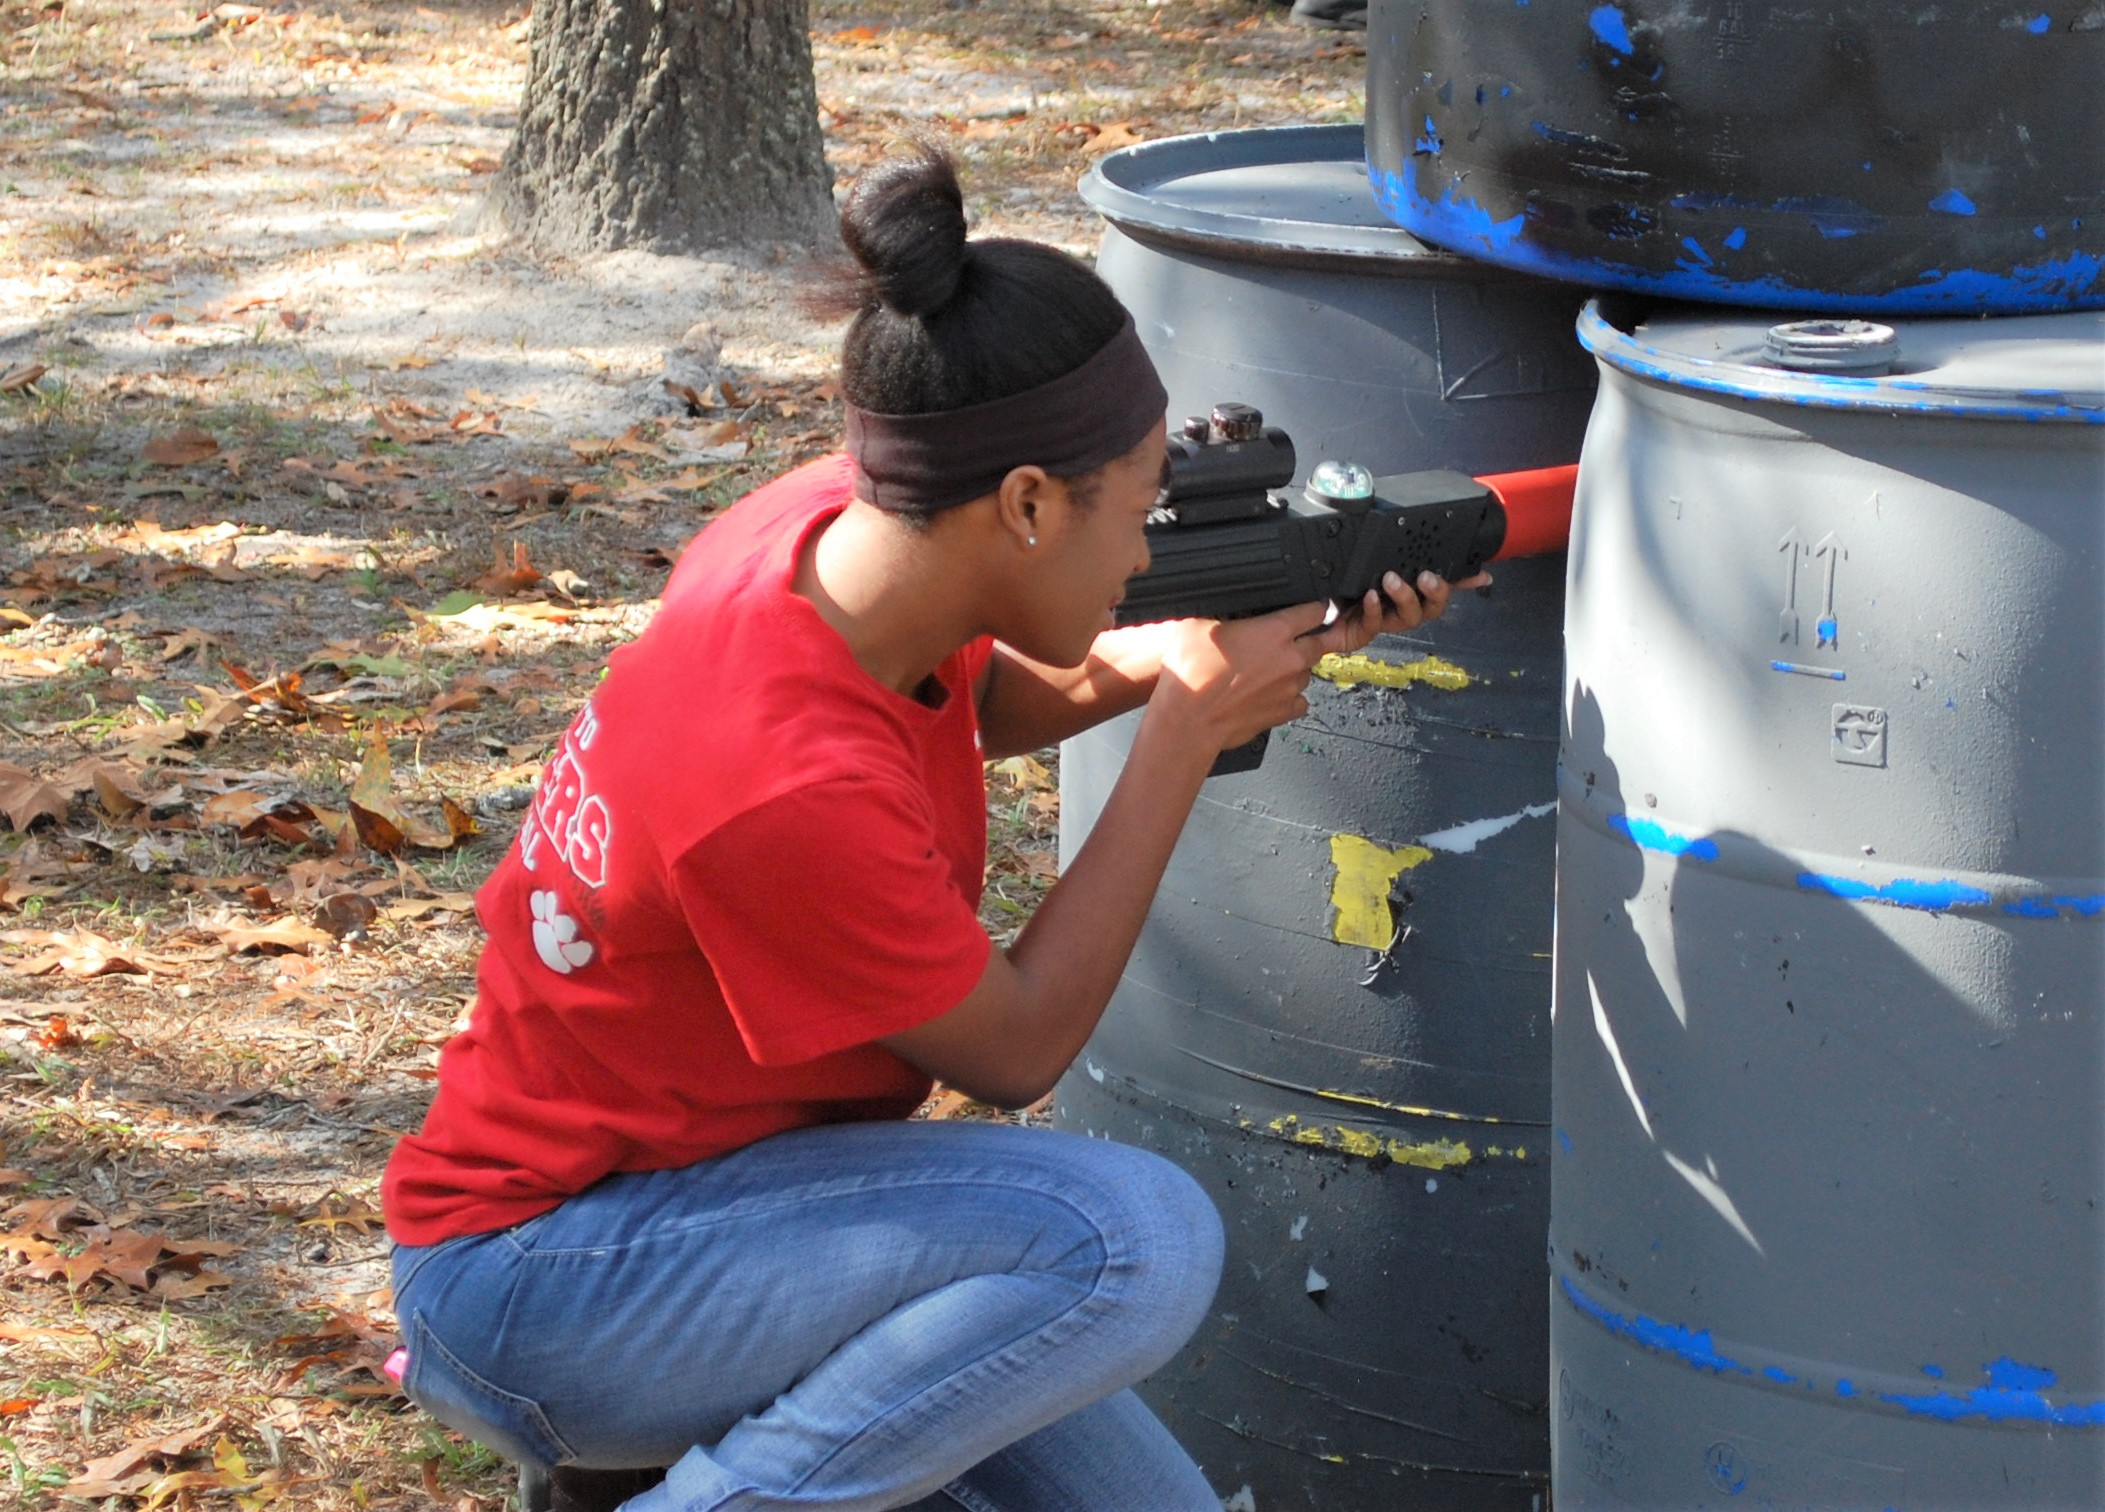 College Events in Florida - Stealth Mobile Laser Tag (60)